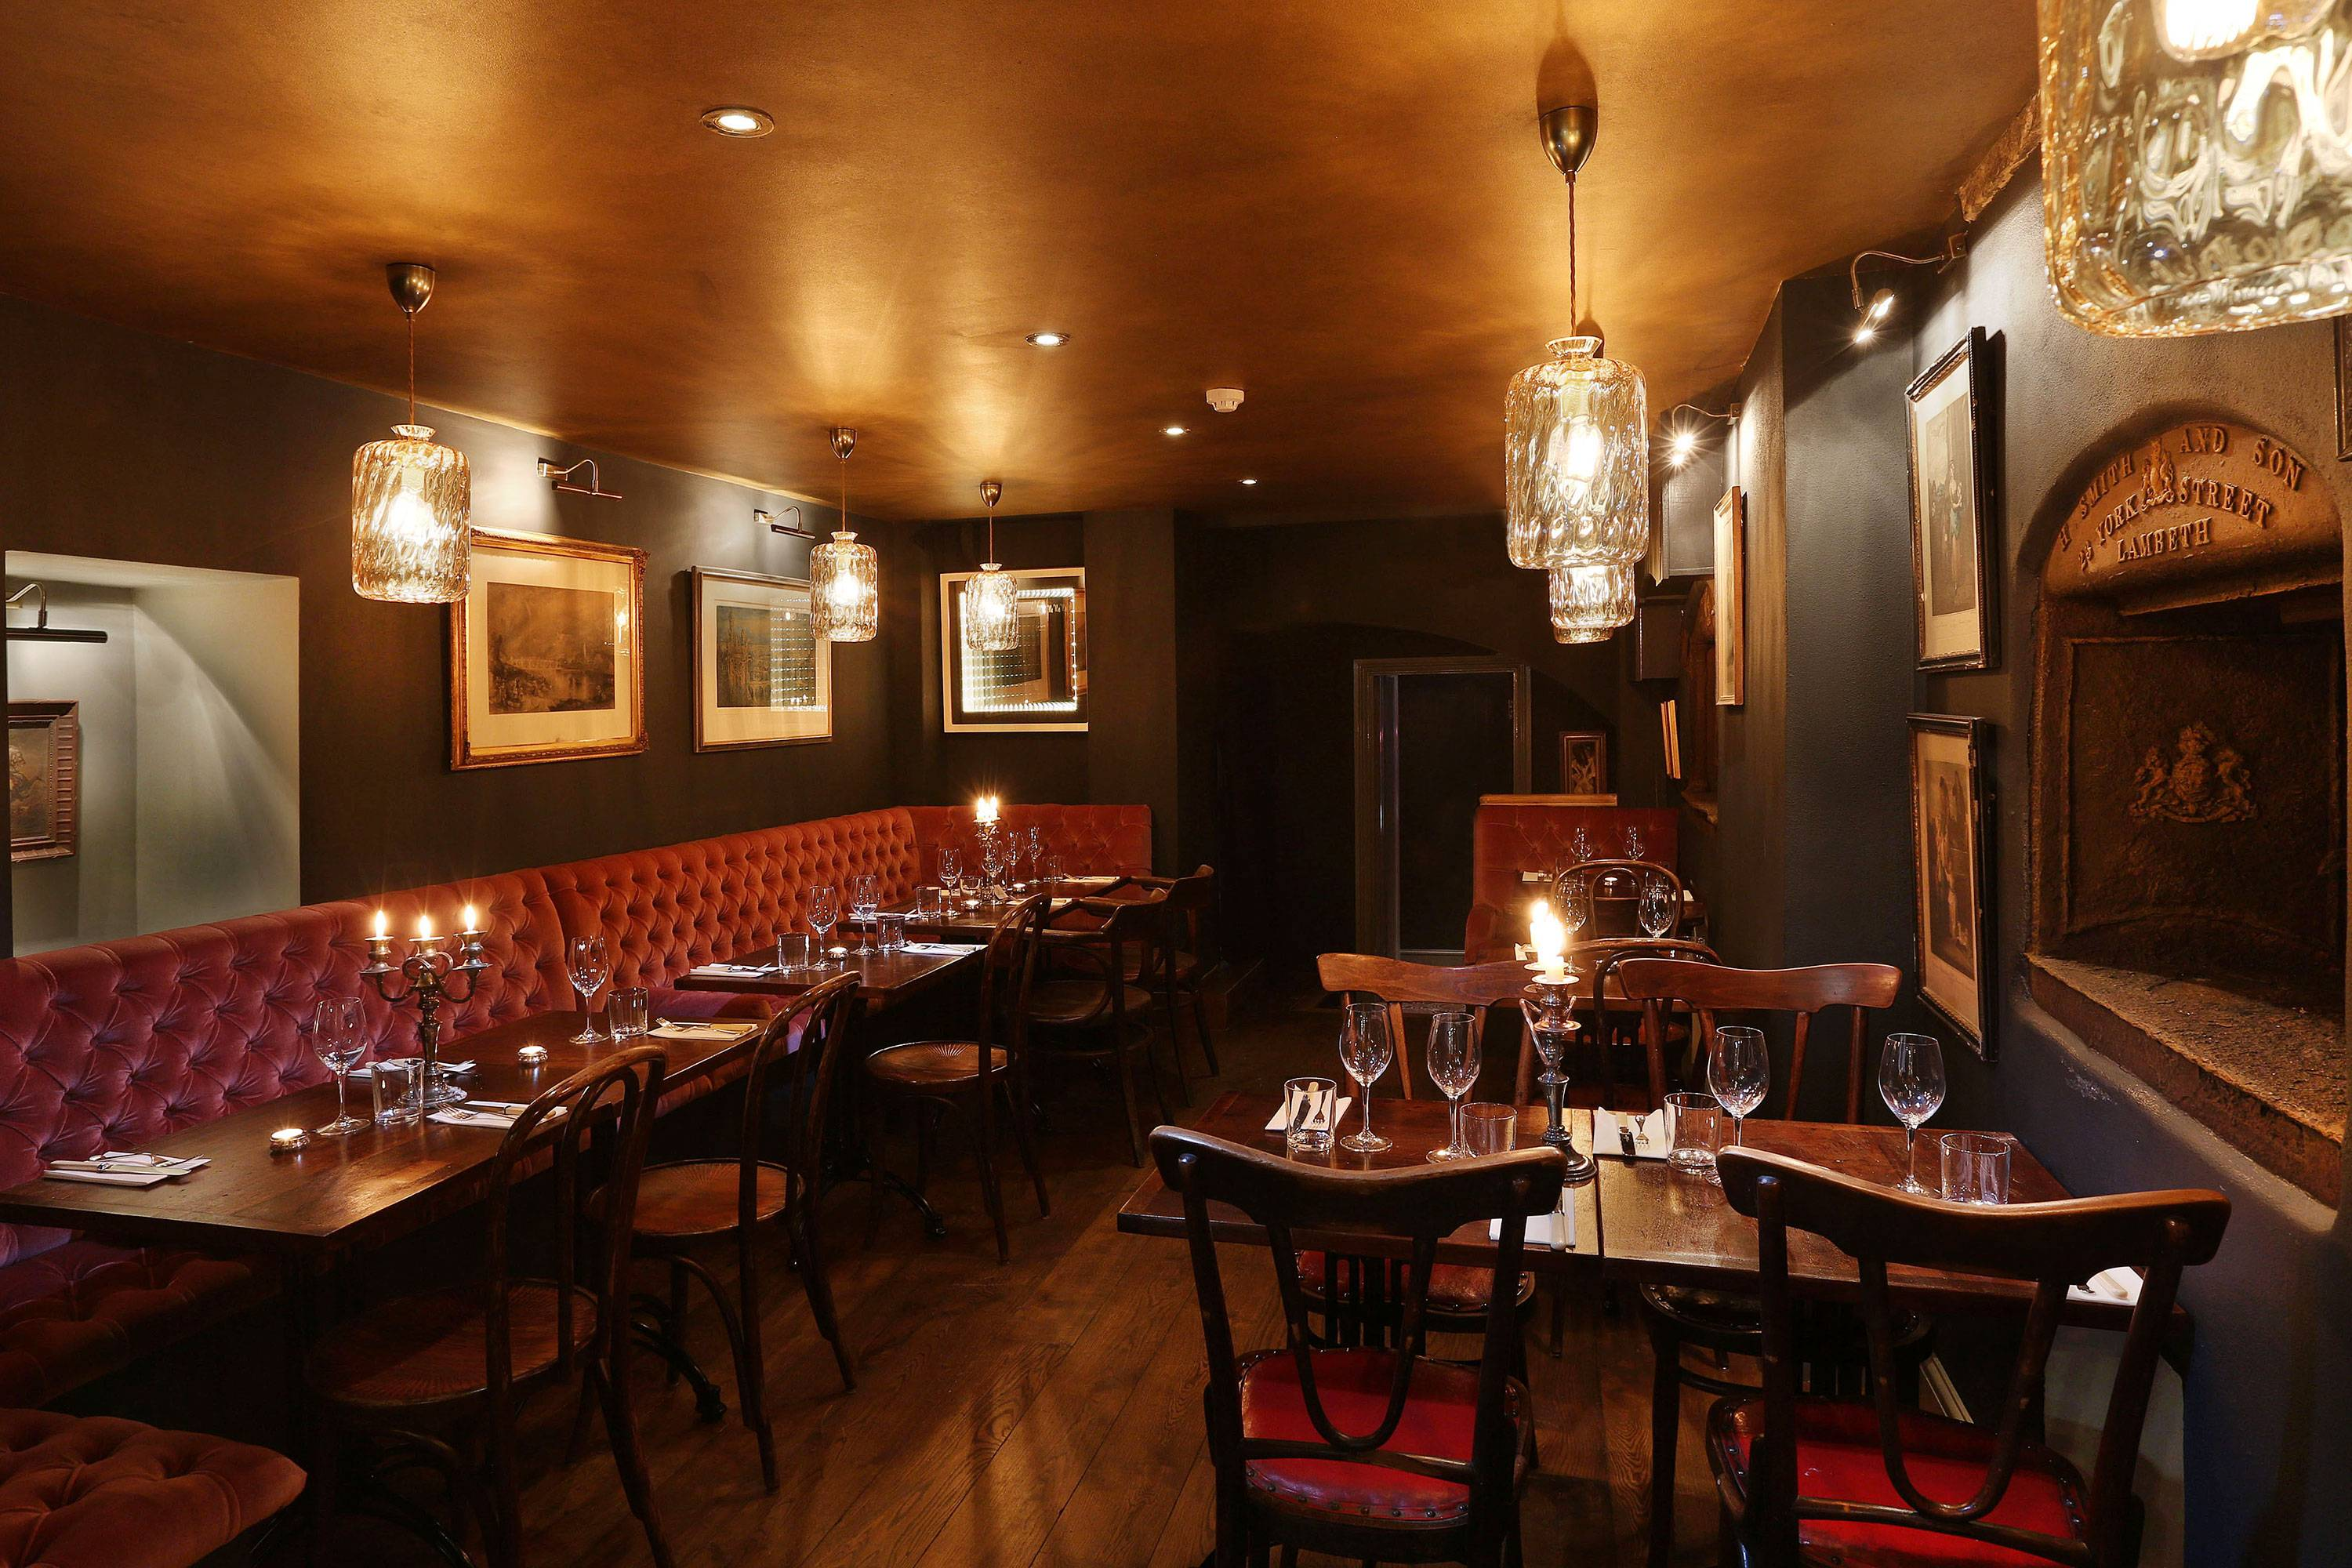 Diner Romantique Au Lit the most romantic restaurants in london 2020 | cn traveller